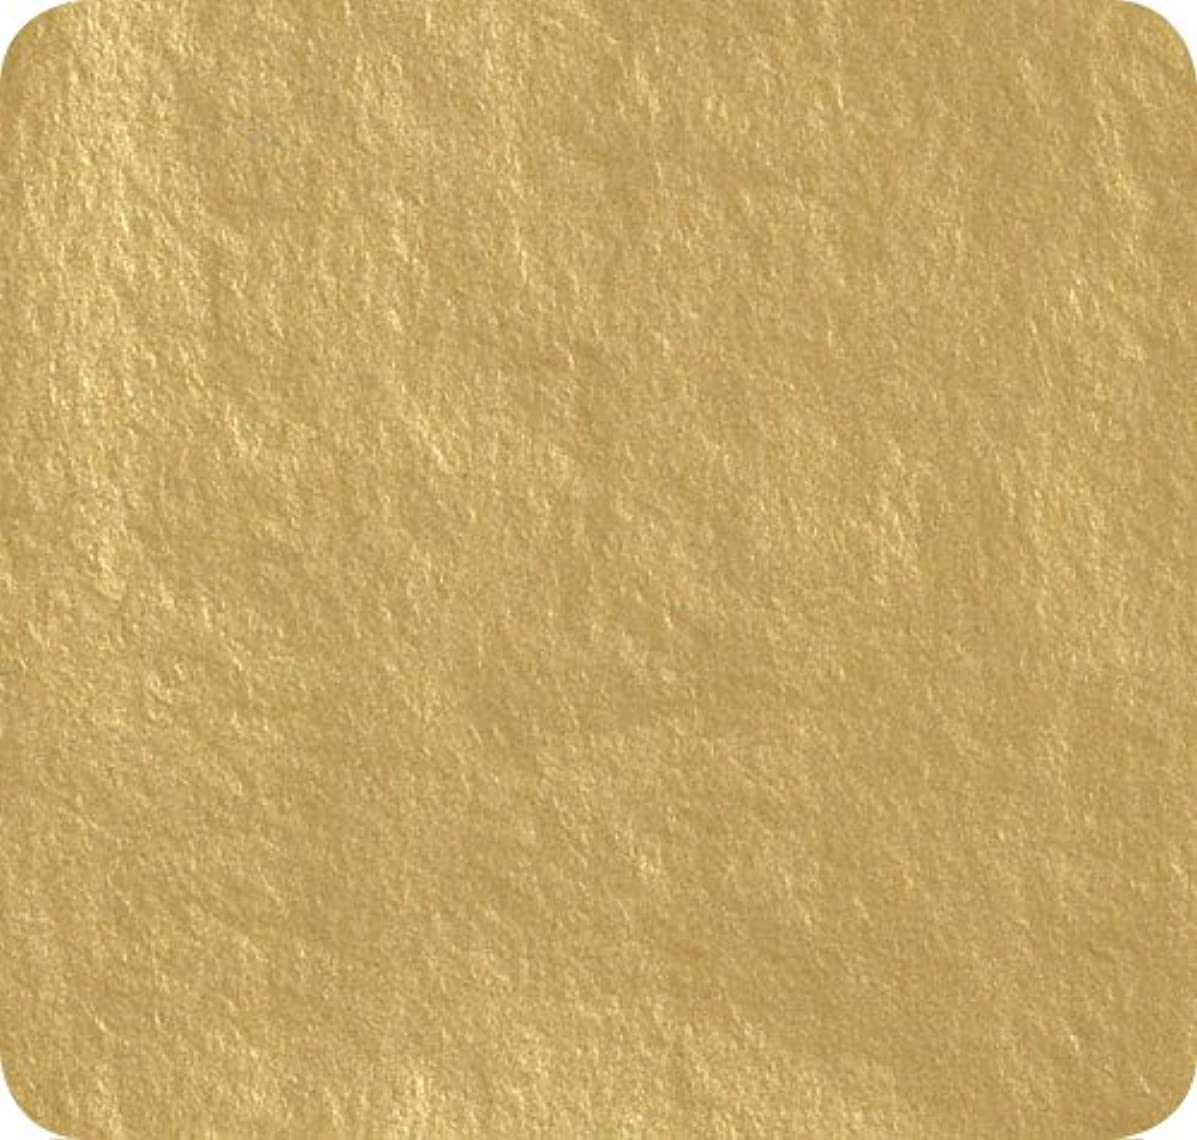 Jillson Roberts Bulk 20 x 30 Inches Metallic Matte Gold Tissue Available in 4 Colors, 200 Unfolded Sheets (BMM15)